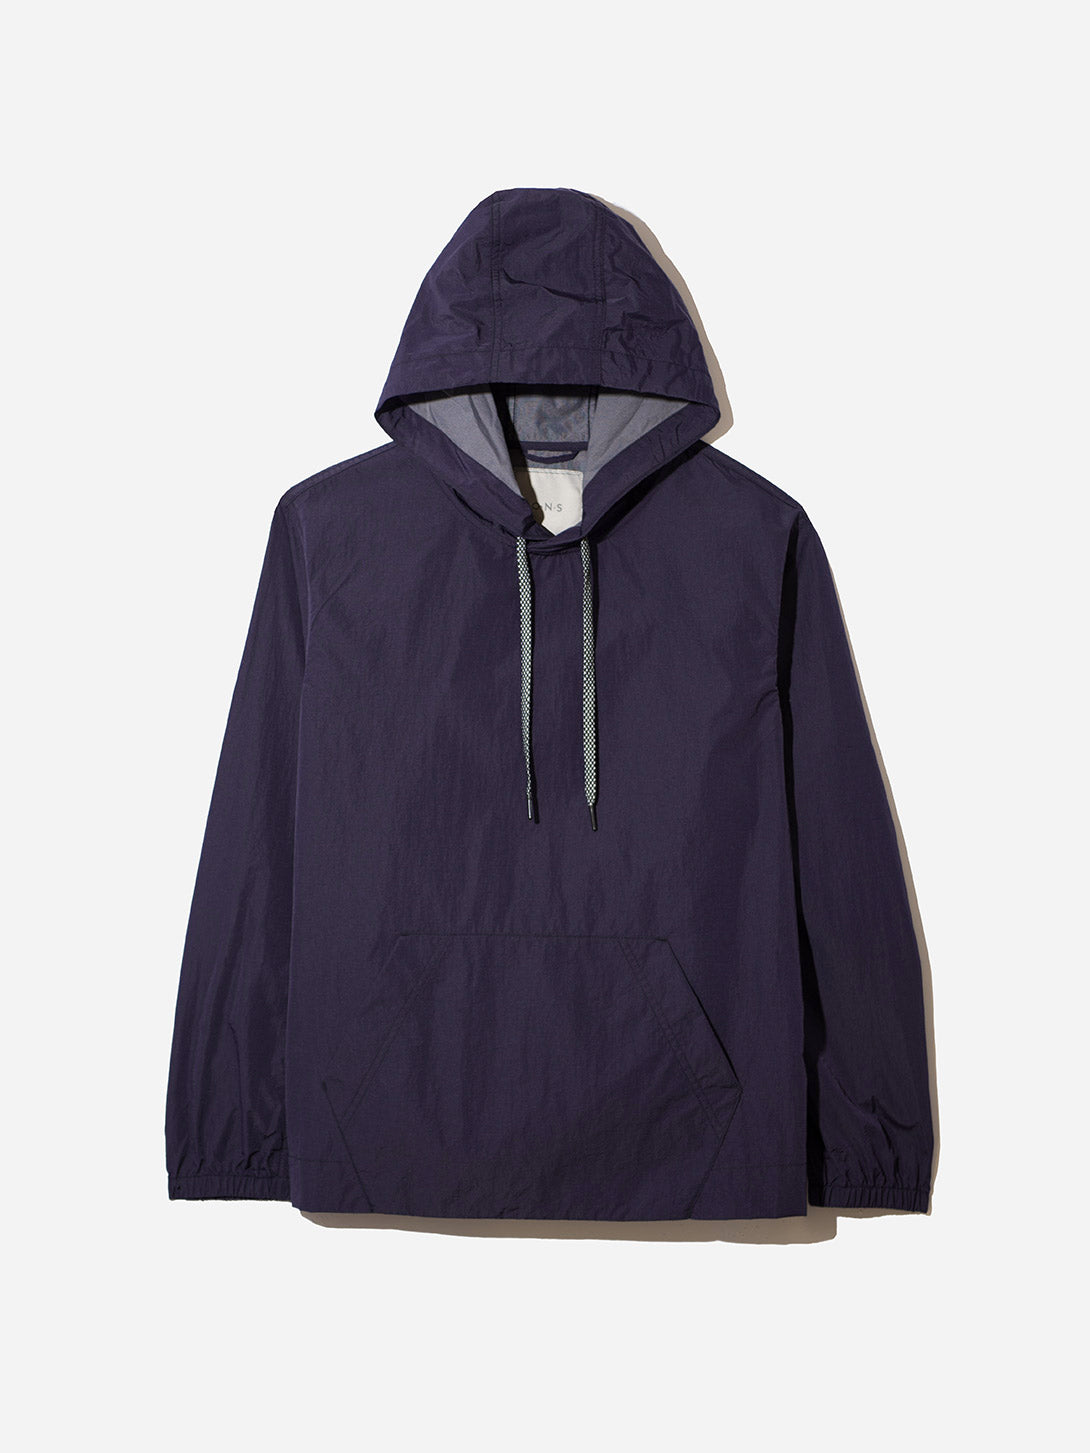 NAVY jackets for men cayden anorak ons clothing